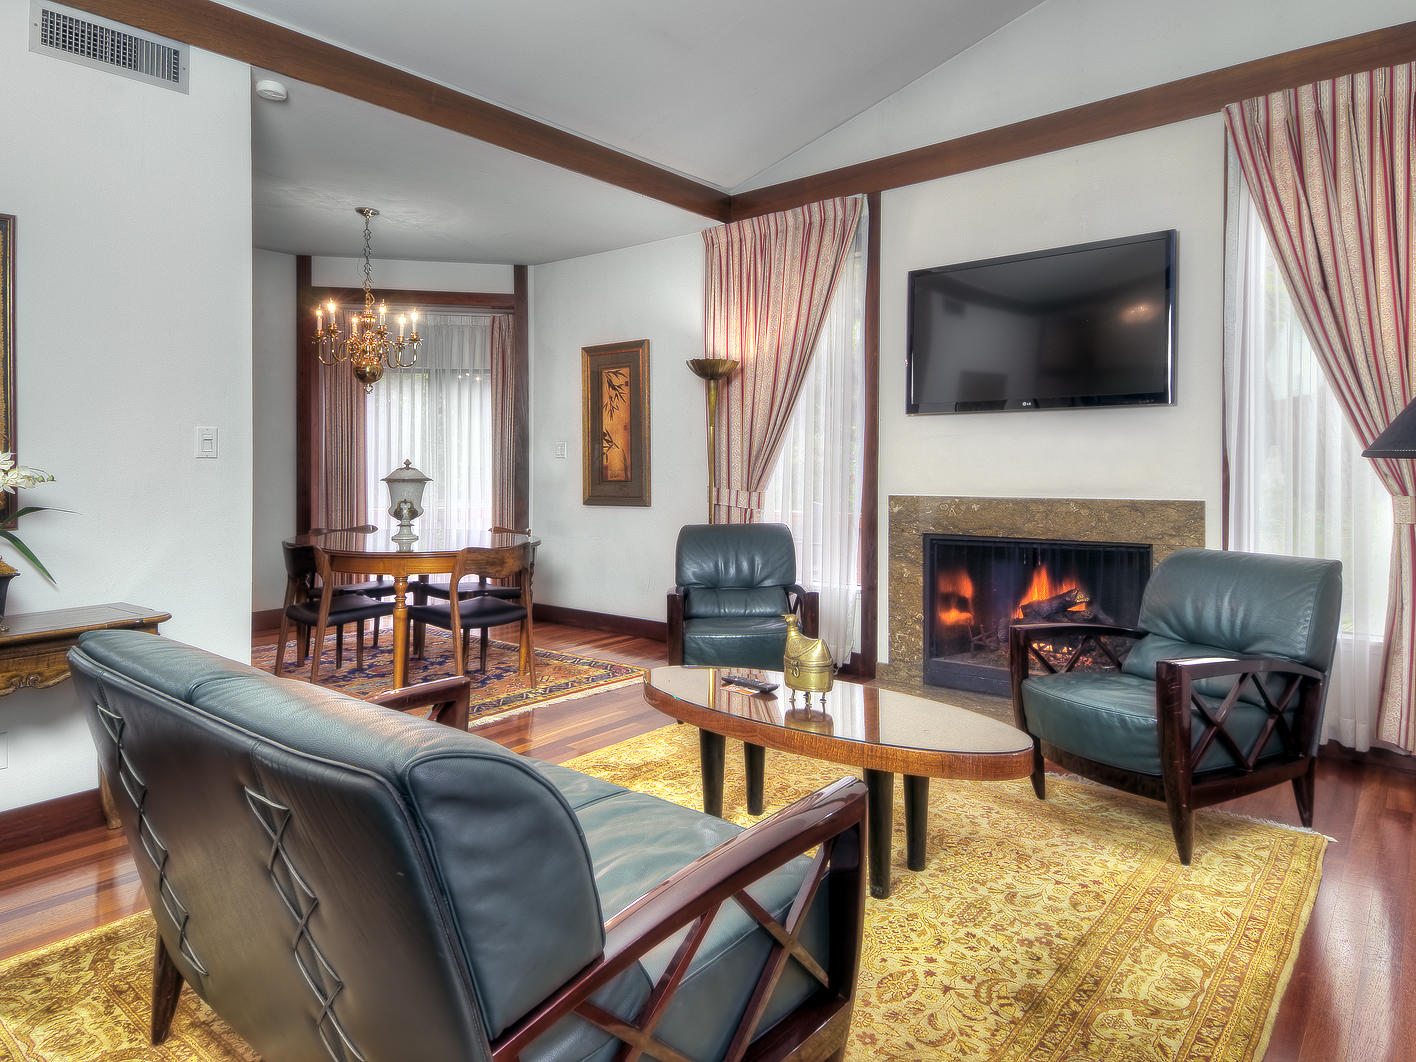 living room area with furniture and fireplace